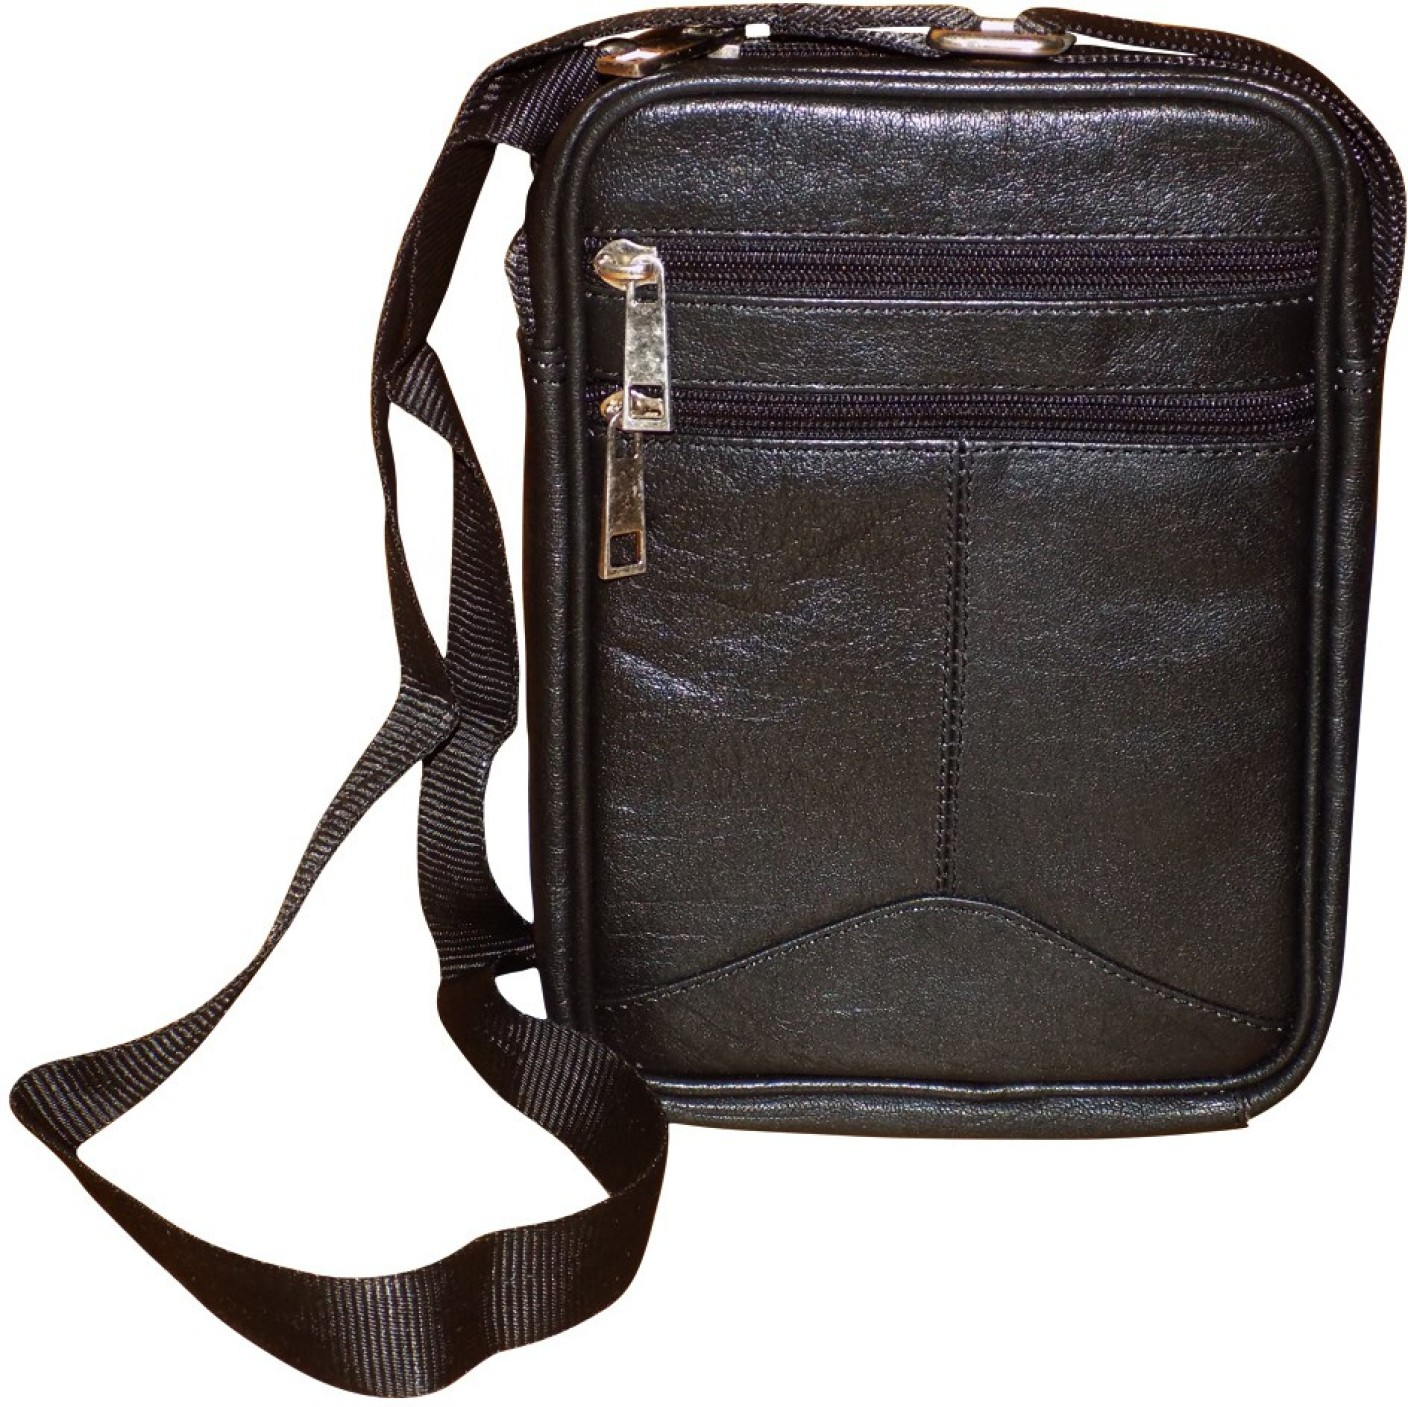 Buy Leather Travel Bags Online India